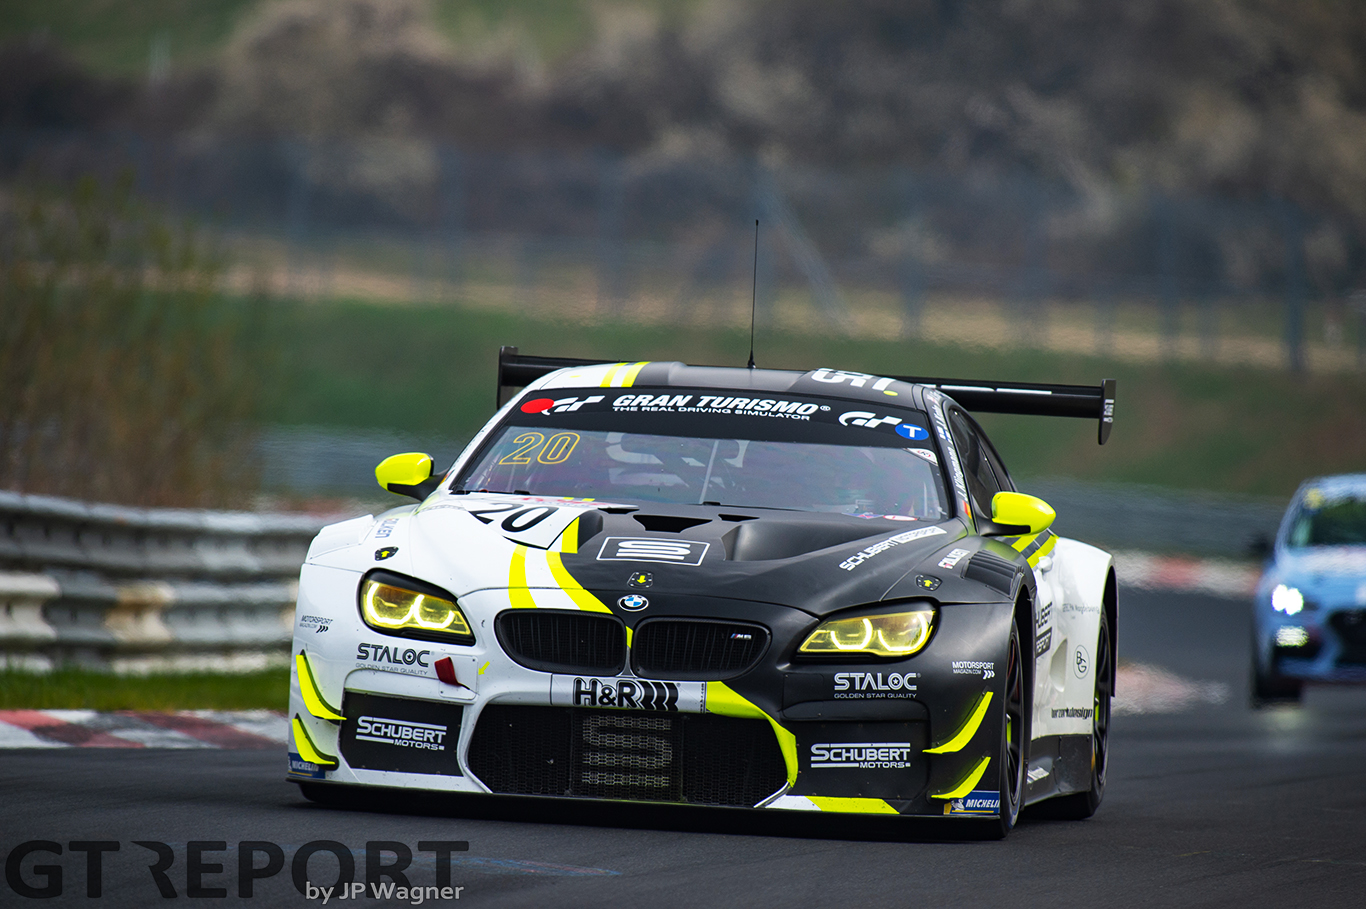 VLN Nürburgring Endurance Series NLS3 qualifying report: Jesse Krohn brings Schubert Motorsport pole in red flagged qualifying